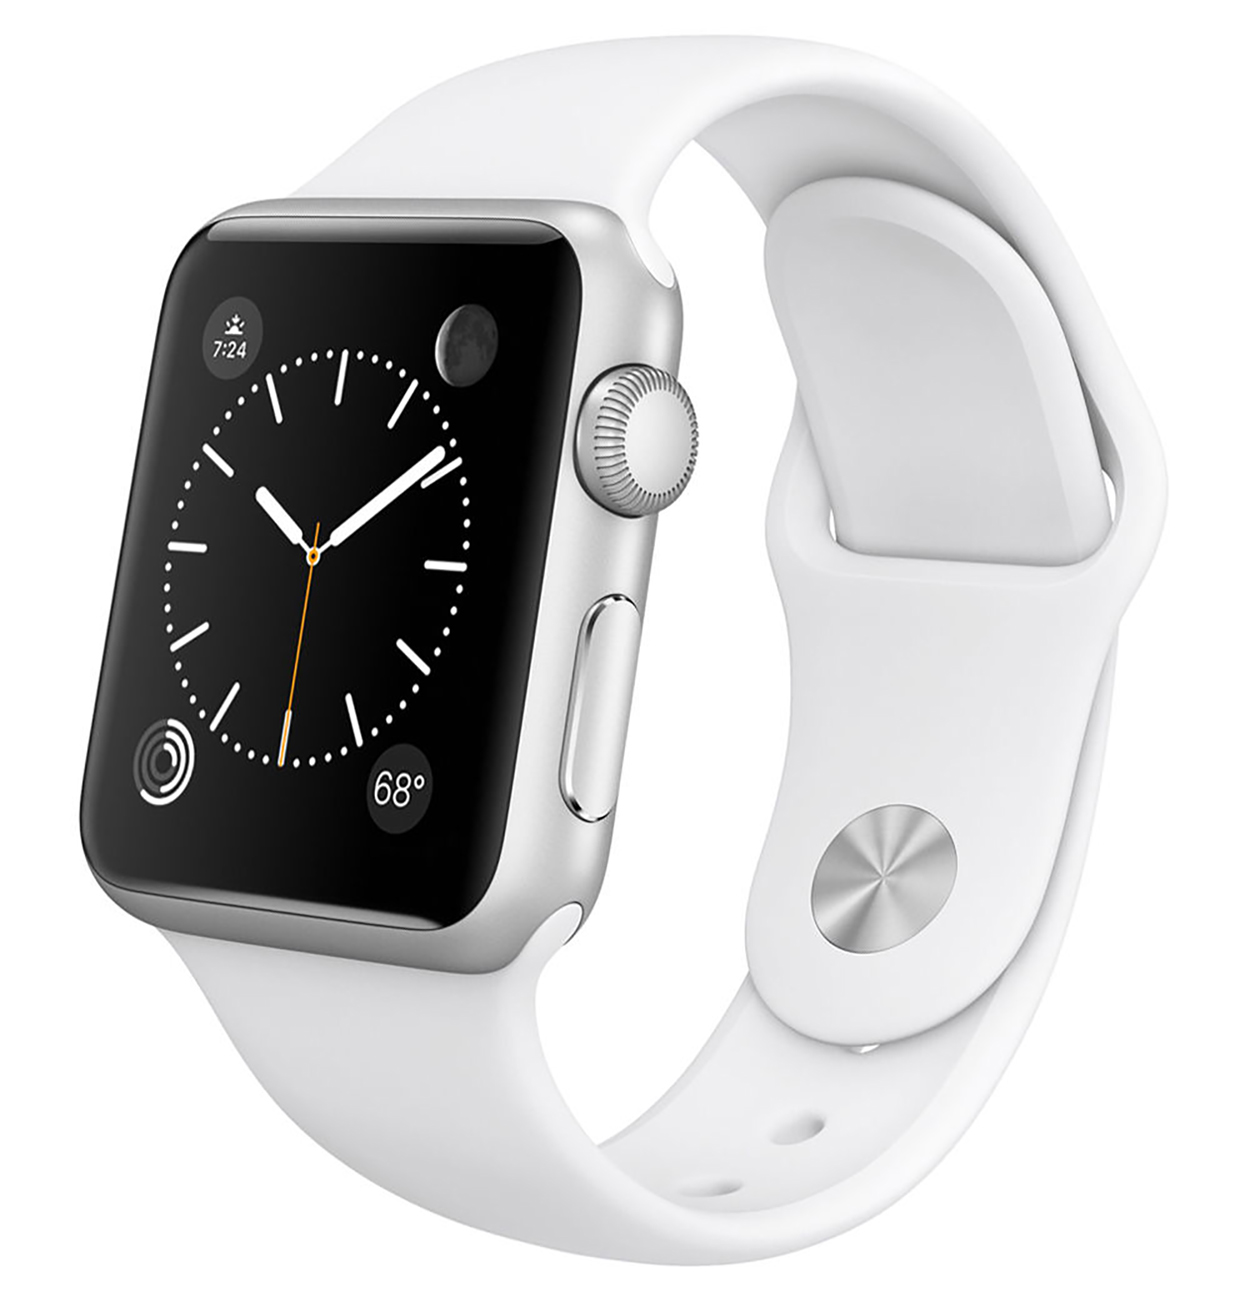 Apple Watch 38mm Silver Aluminum Case with White Sport Band (Certified Refurbished)